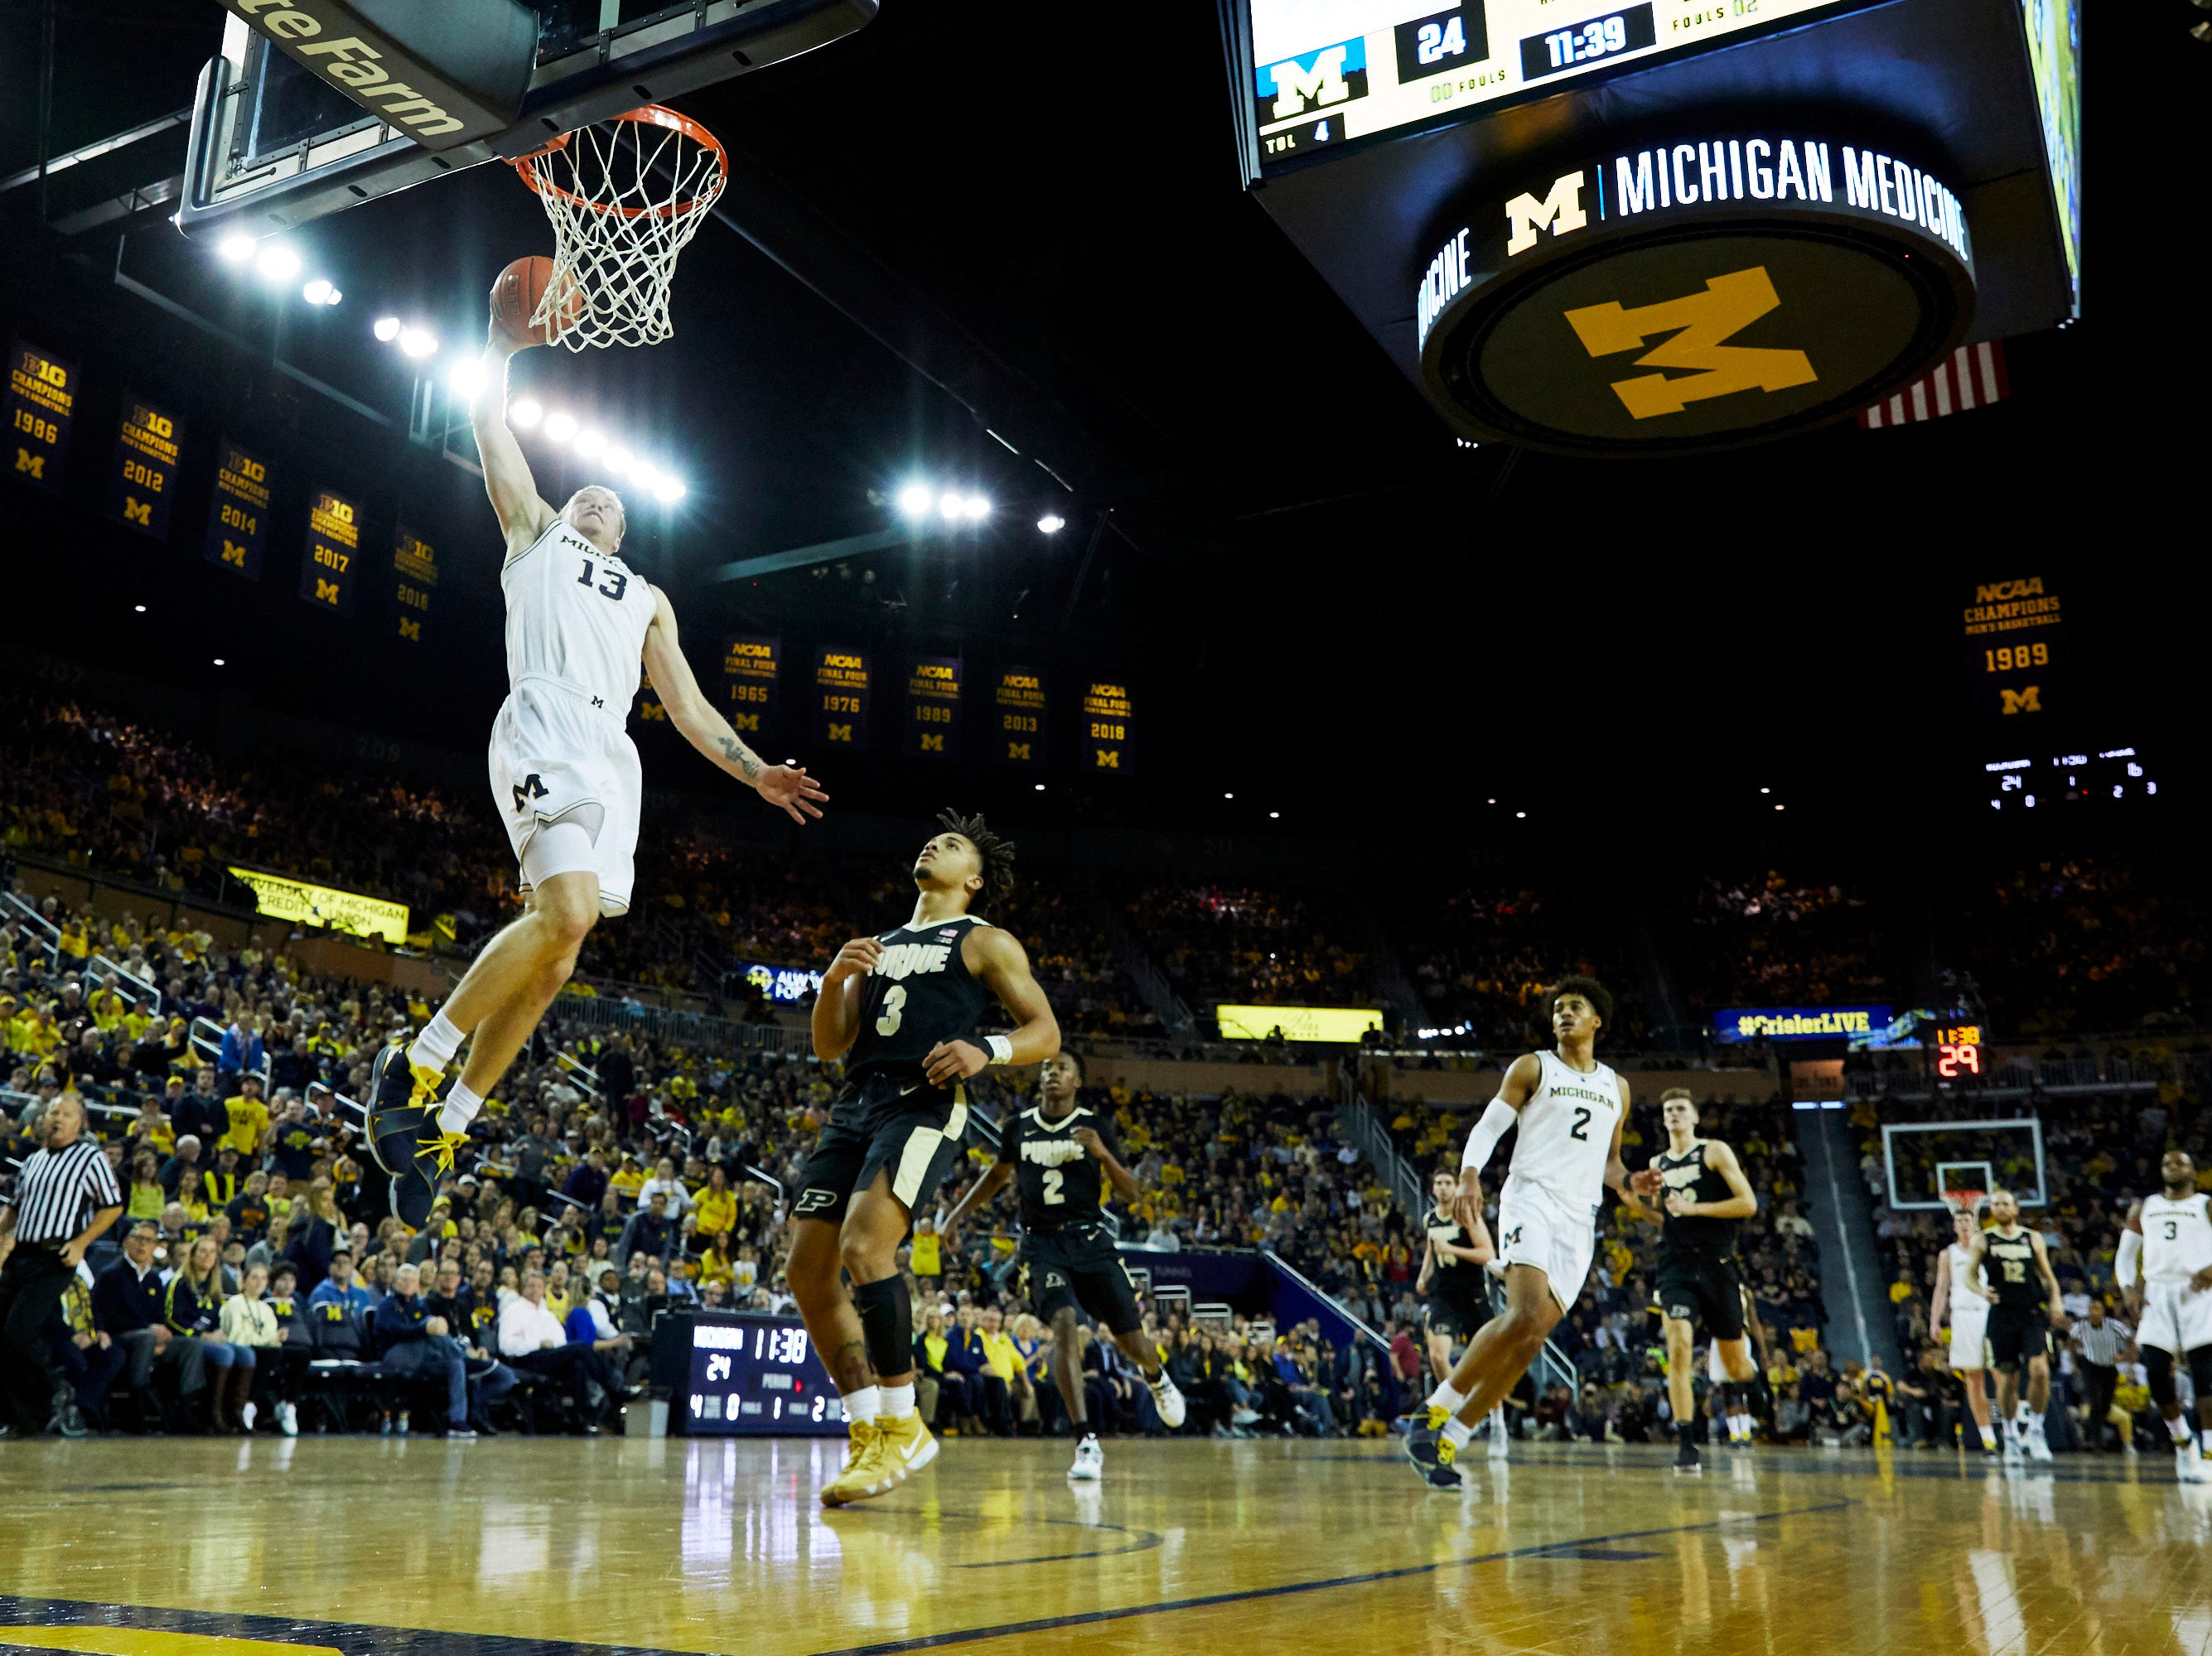 Dec 1, 2018; Ann Arbor, MI, USA; Michigan Wolverines forward Ignas Brazdeikis (13) dunks in the first half against the Purdue Boilermakers at Crisler Center. Mandatory Credit: Rick Osentoski-USA TODAY Sports